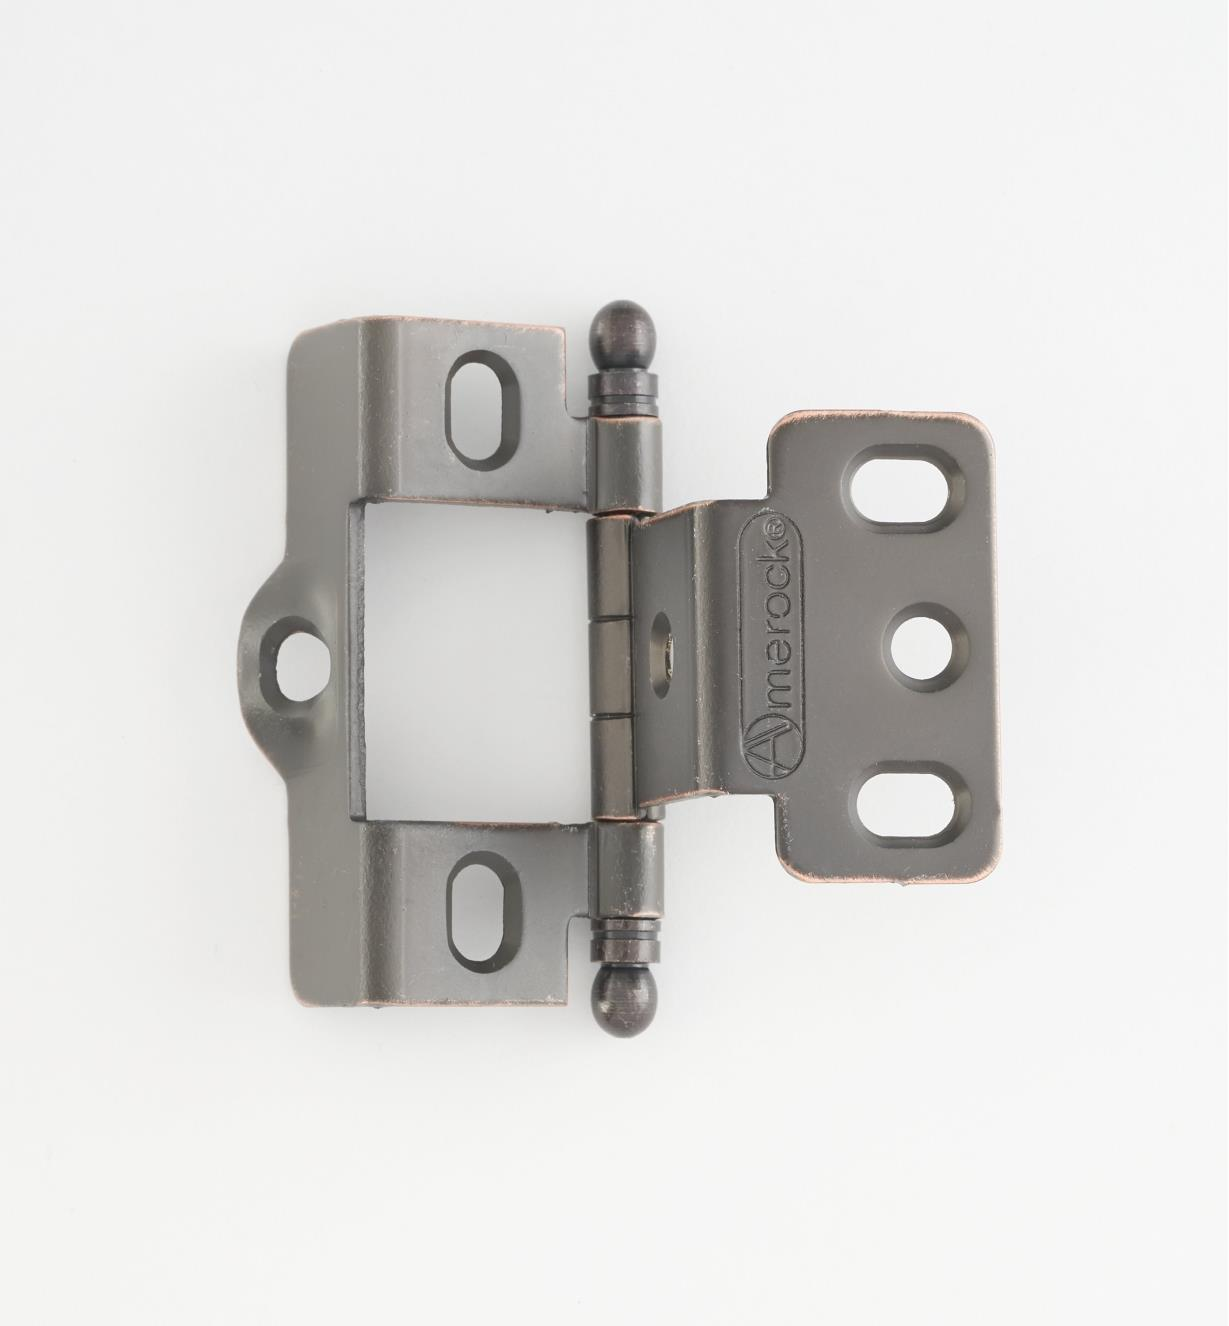 01H3092 - Full-Wrap Hinge,Oil-Rubbed Bronze, Ball